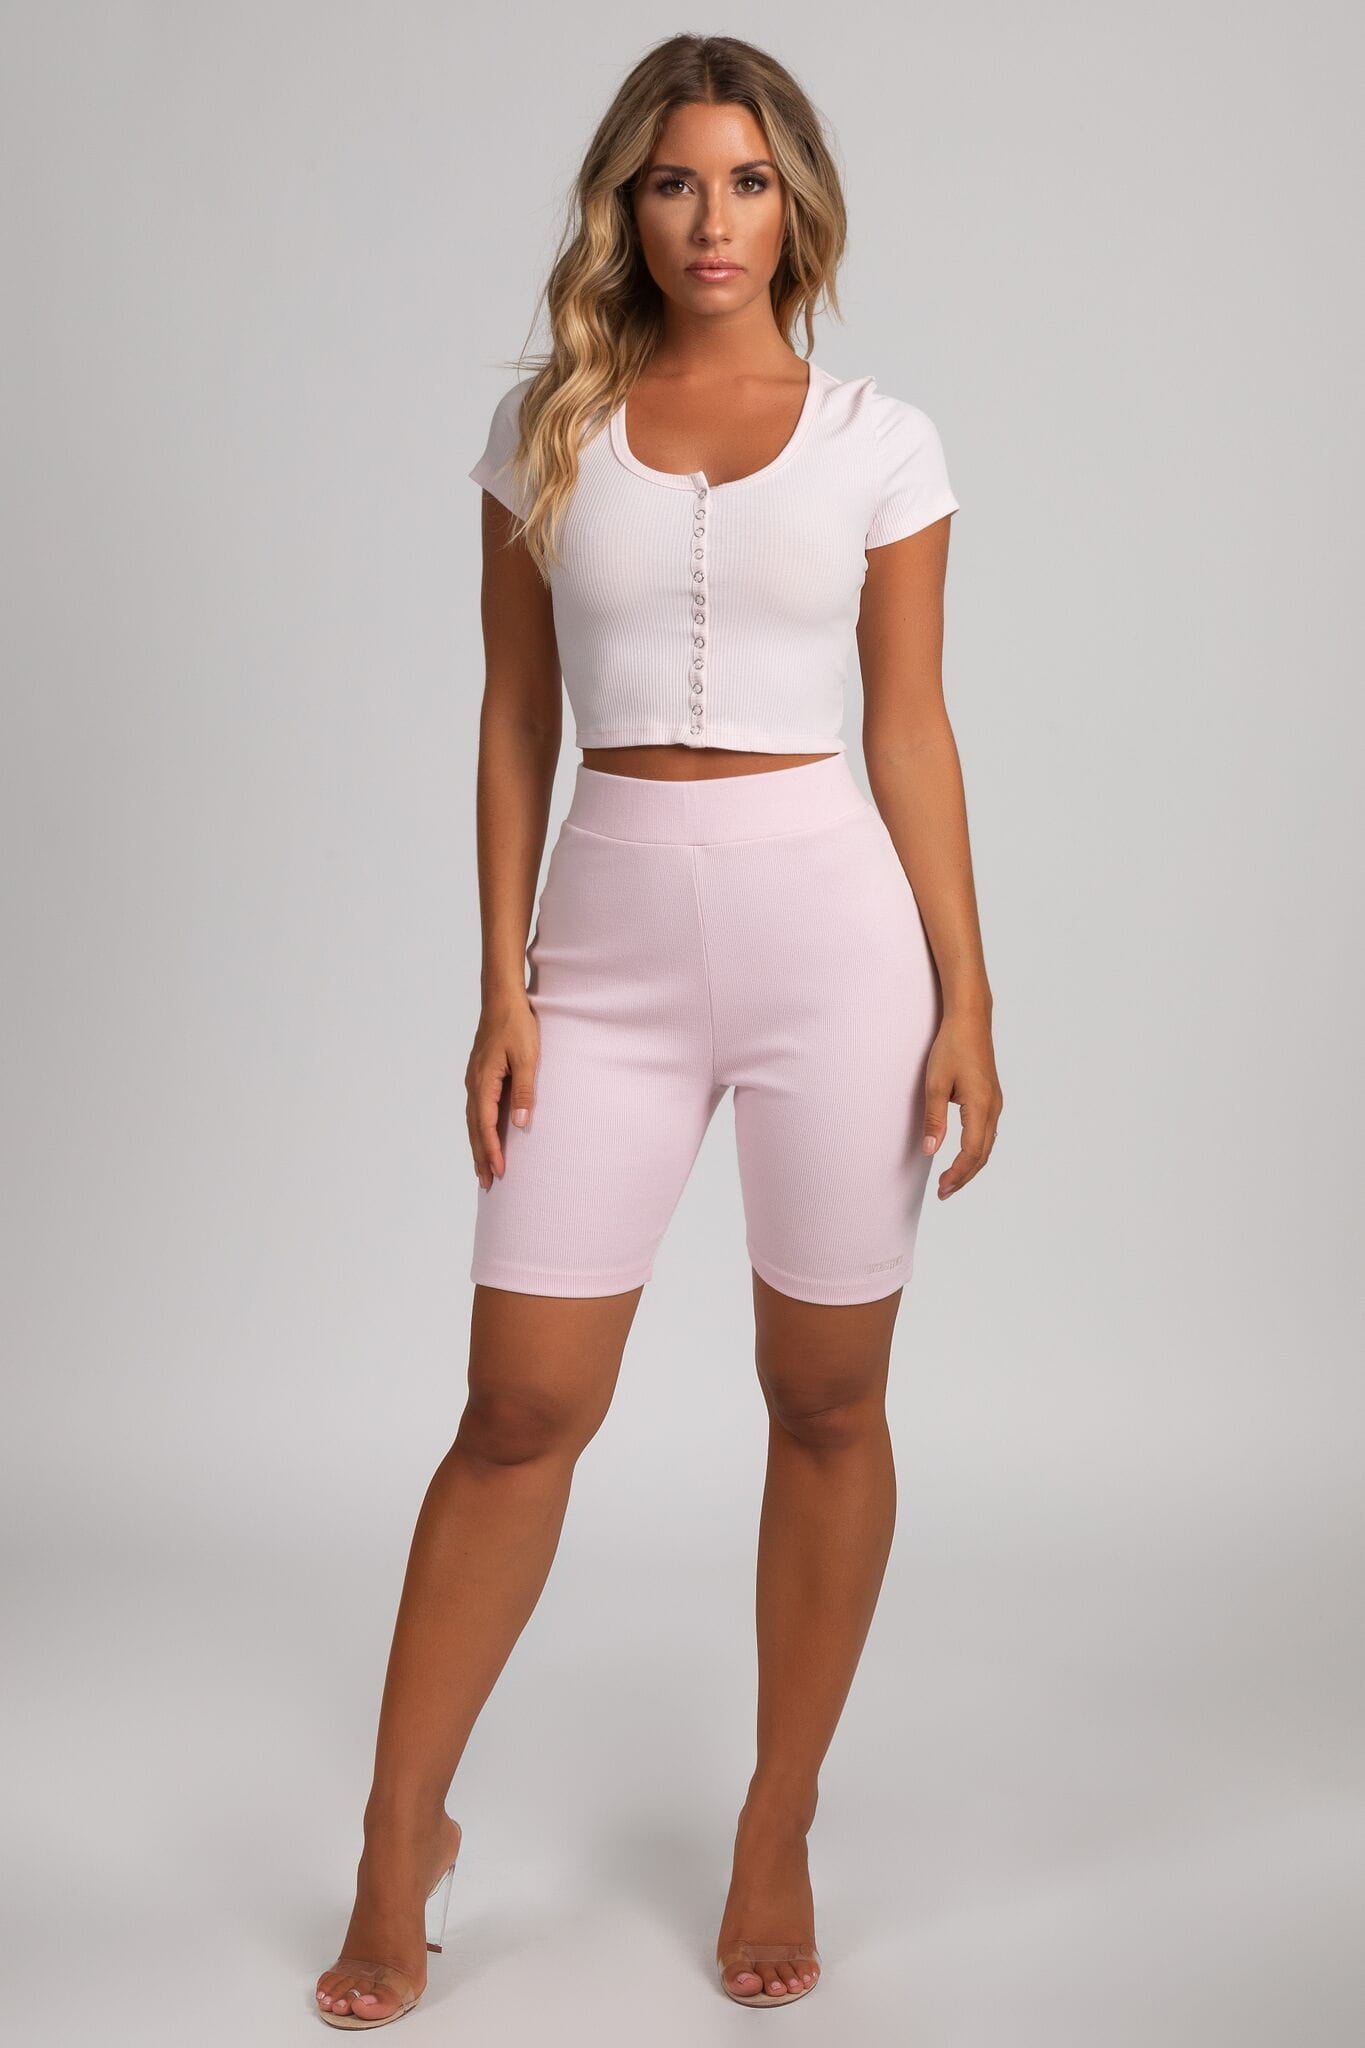 Basia Button Up Crop Top - Baby Pink - MESHKI